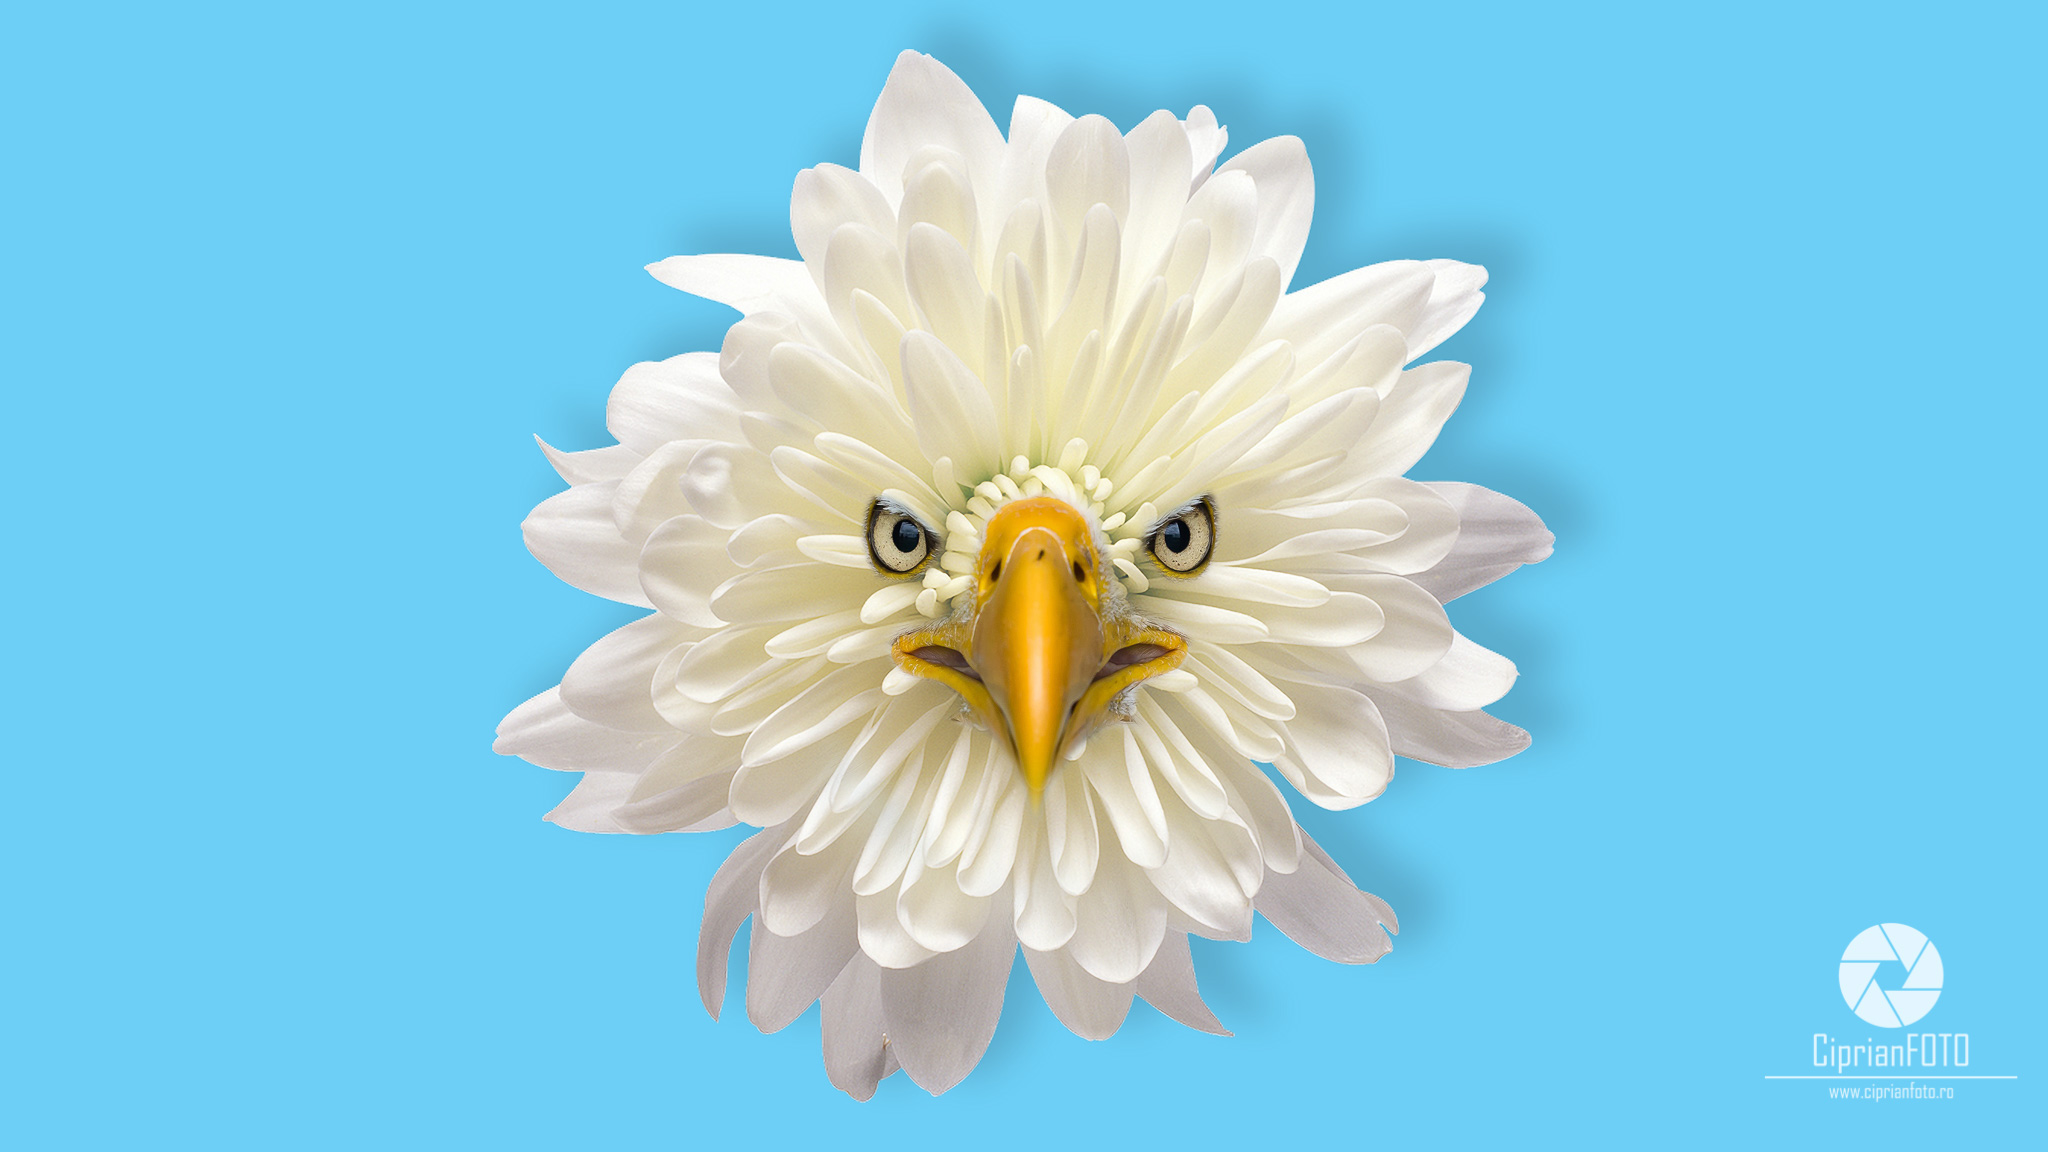 Photoshop Tutorial, Floral Bird, Chrysanthemum Bald Eagle, Chrysanthemum, Bald Eagle, CiprianFOTO, Photoshop Tutorial Ideas